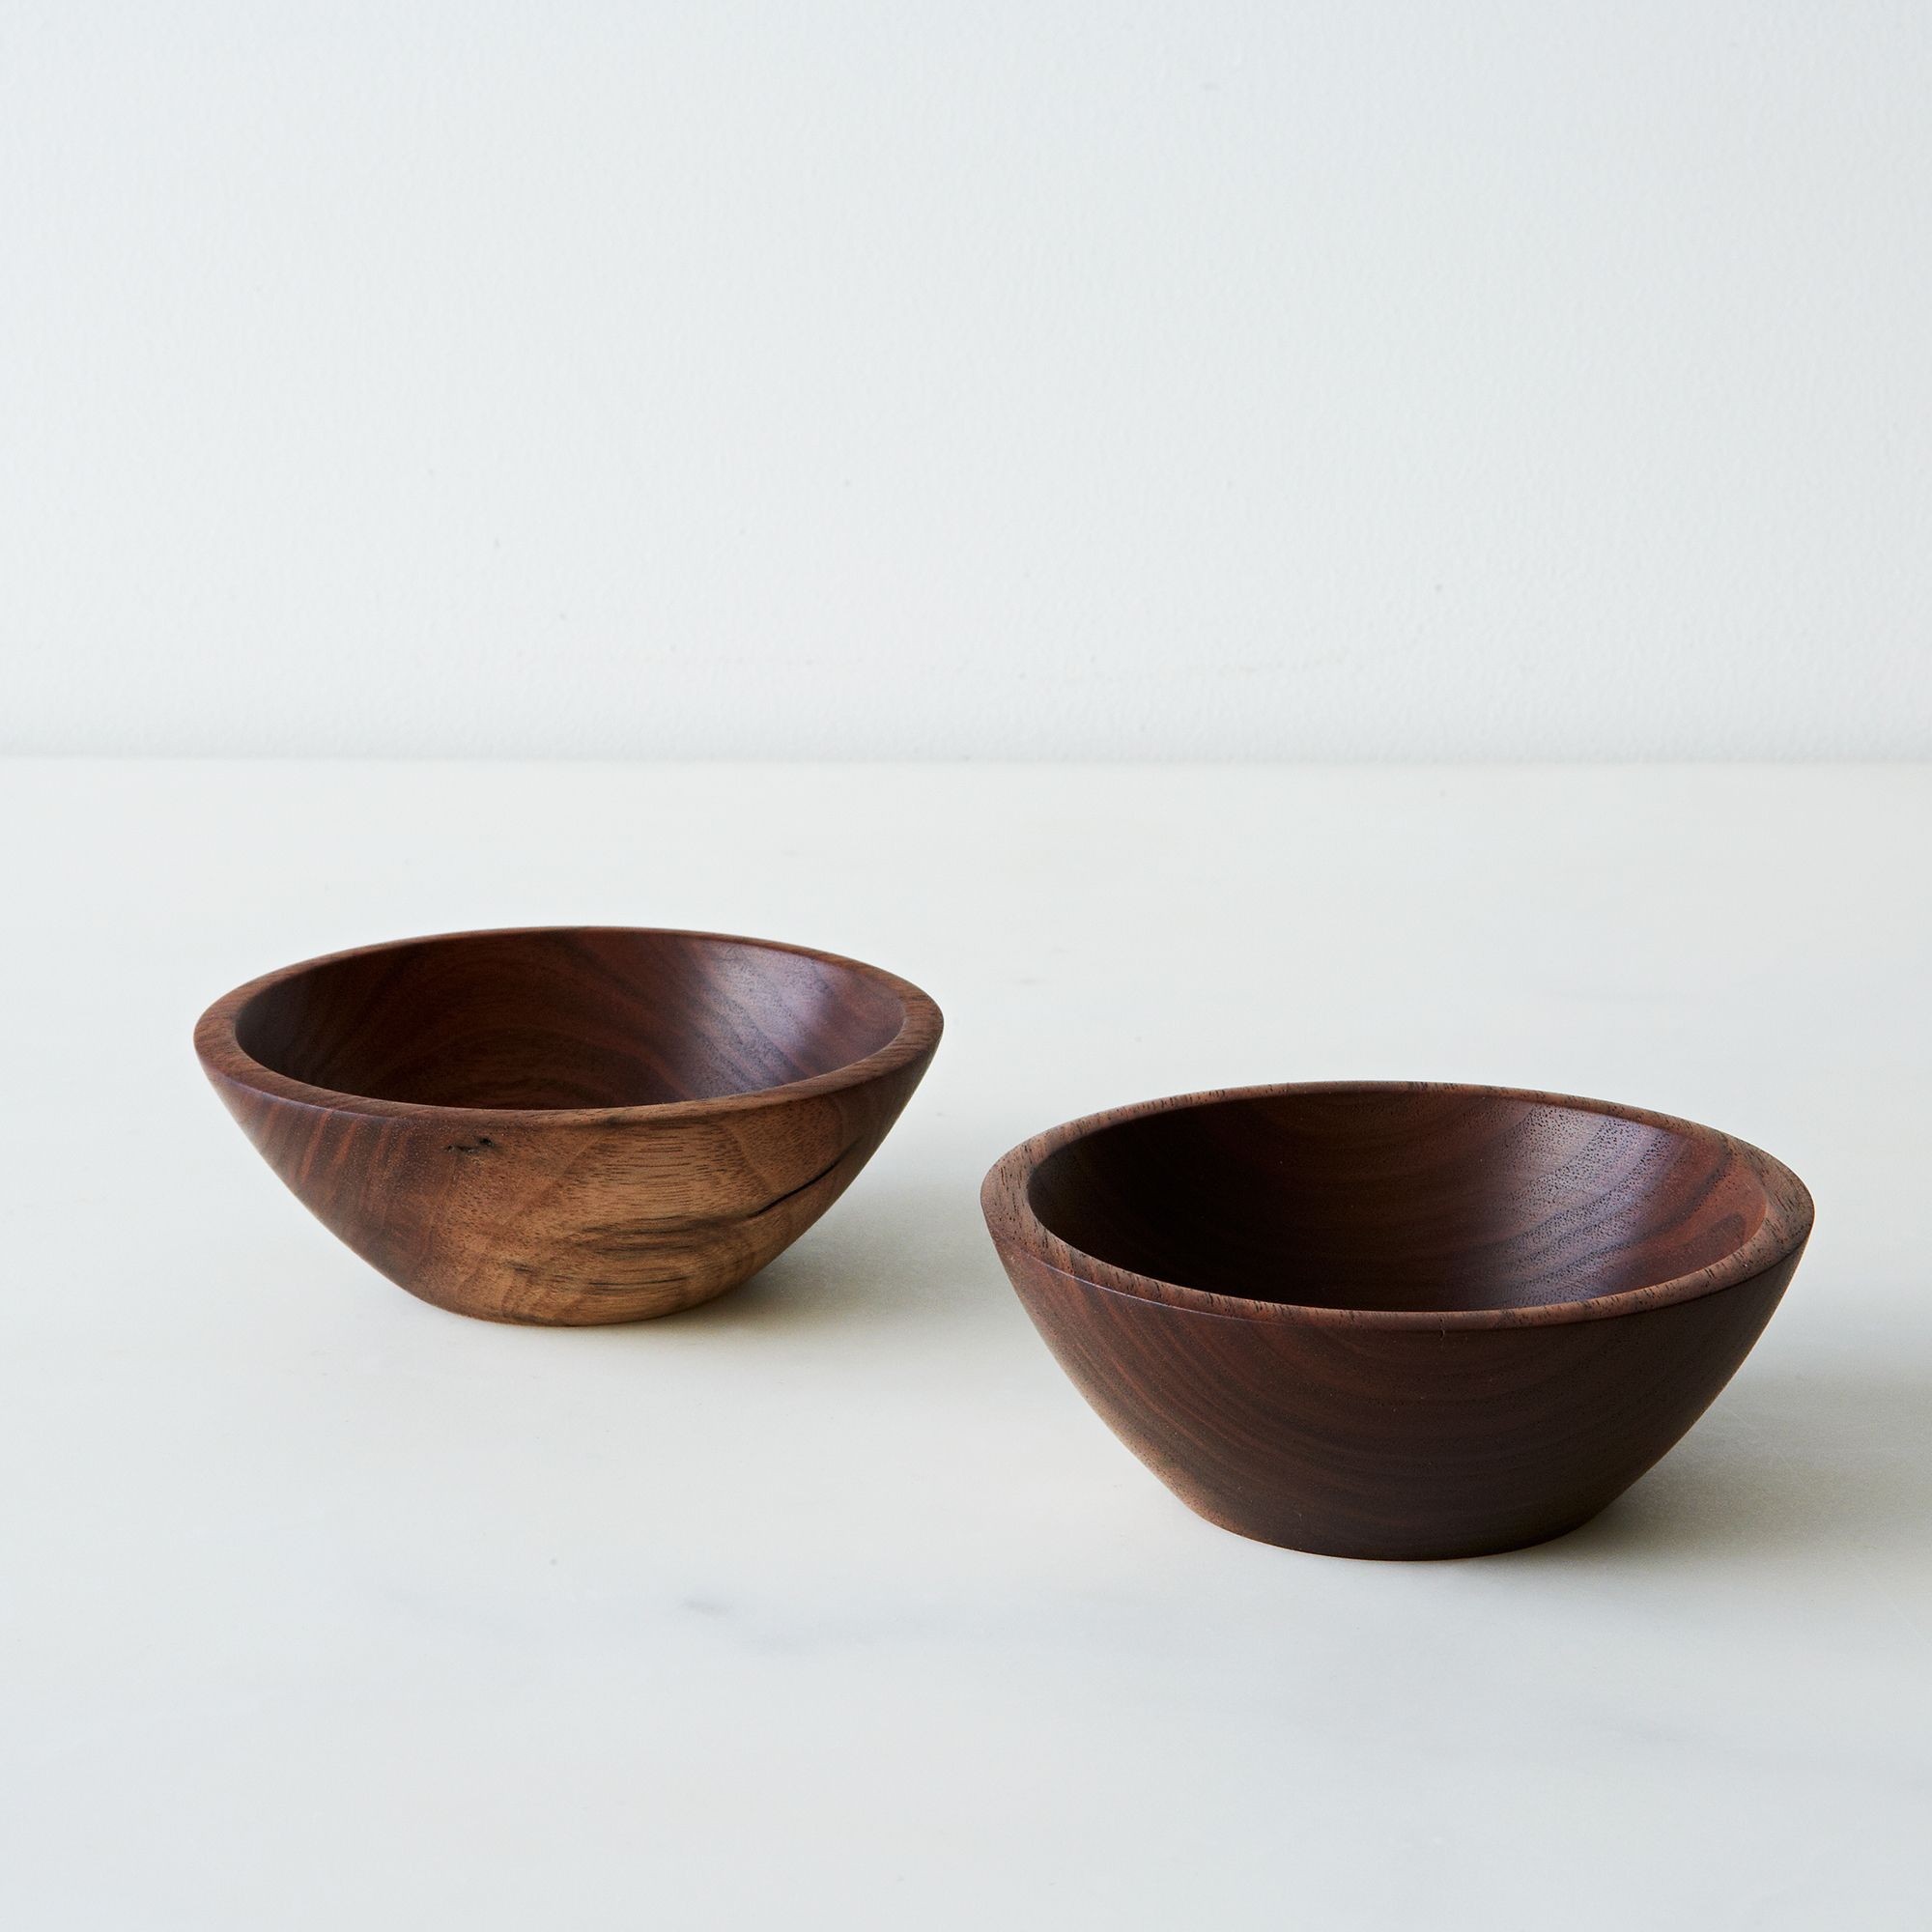 8ecac94c 5b52 4c98 8f00 51a386802b29  2015 0211 taking turns hand turned small walnut bowls alpha smoot 093